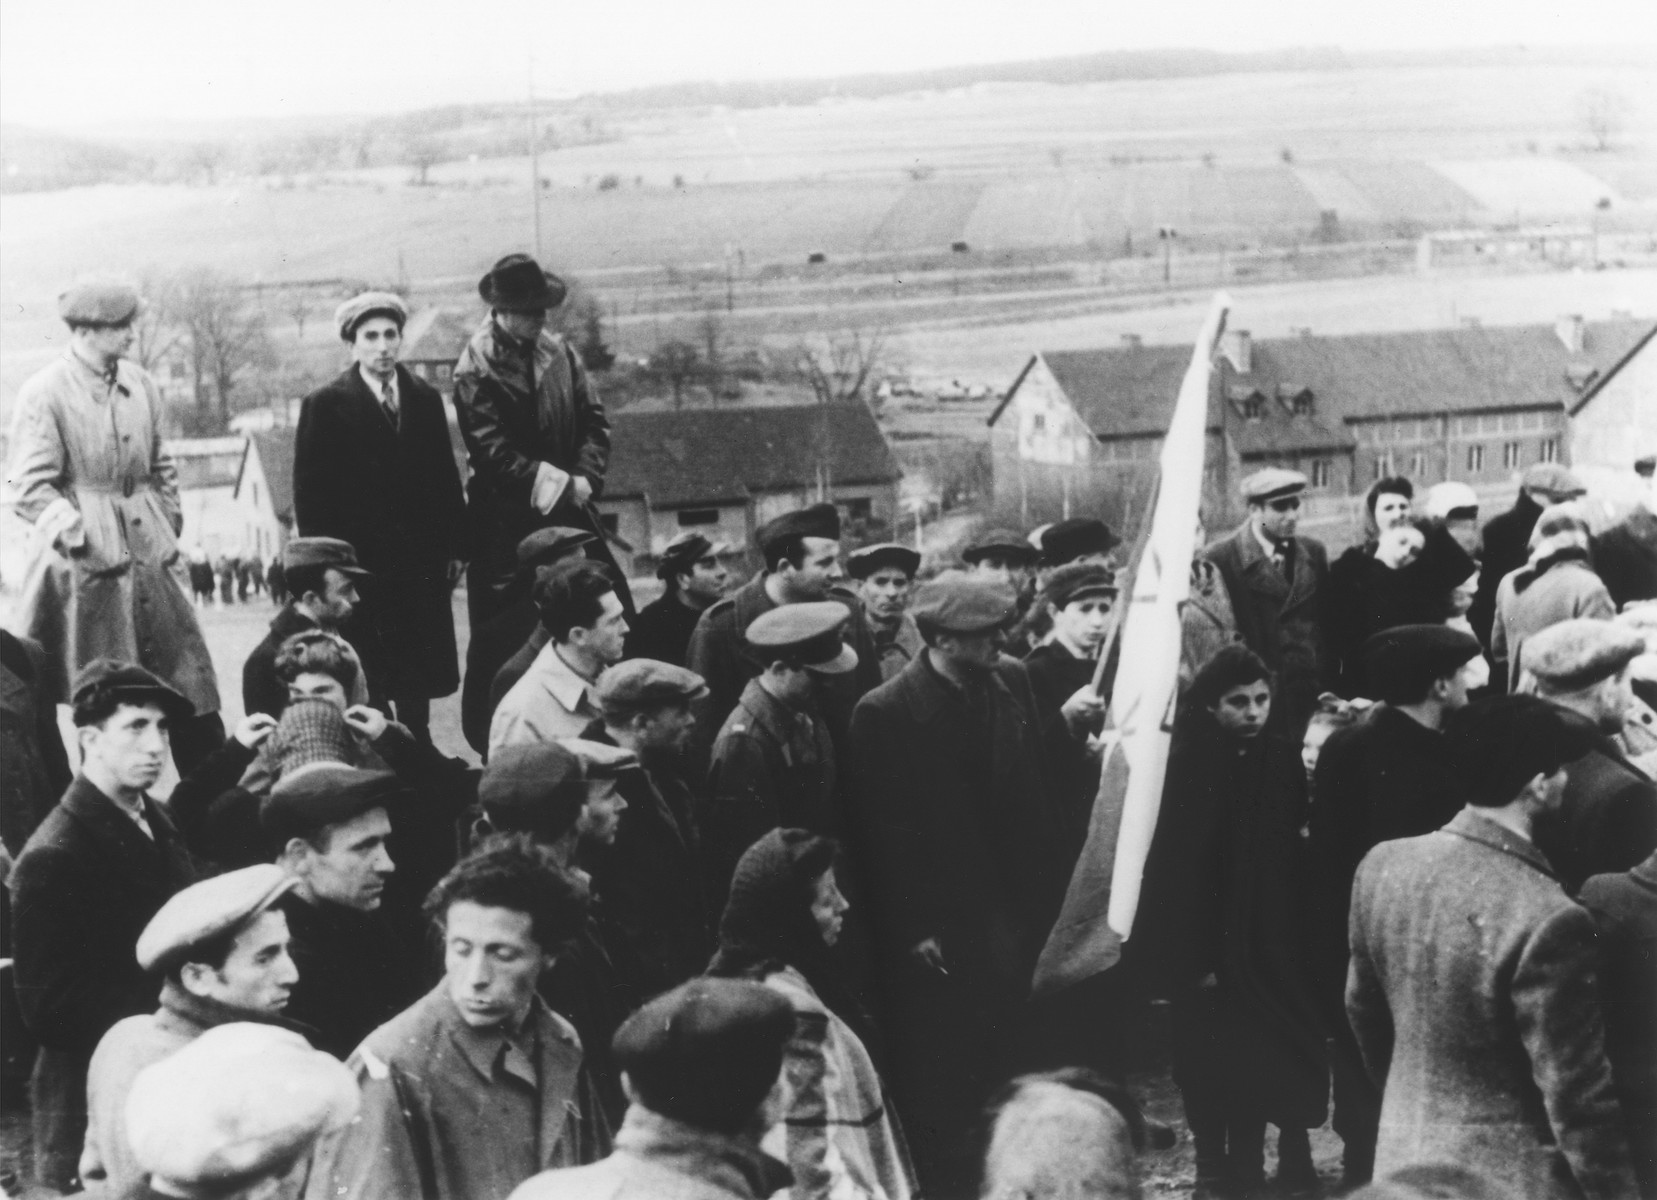 Jewish DPs at the Herzog displaced persons camp, participate in a demonstration to protest the forcible return of the Exodus 1947 immigrant ship to Europe.